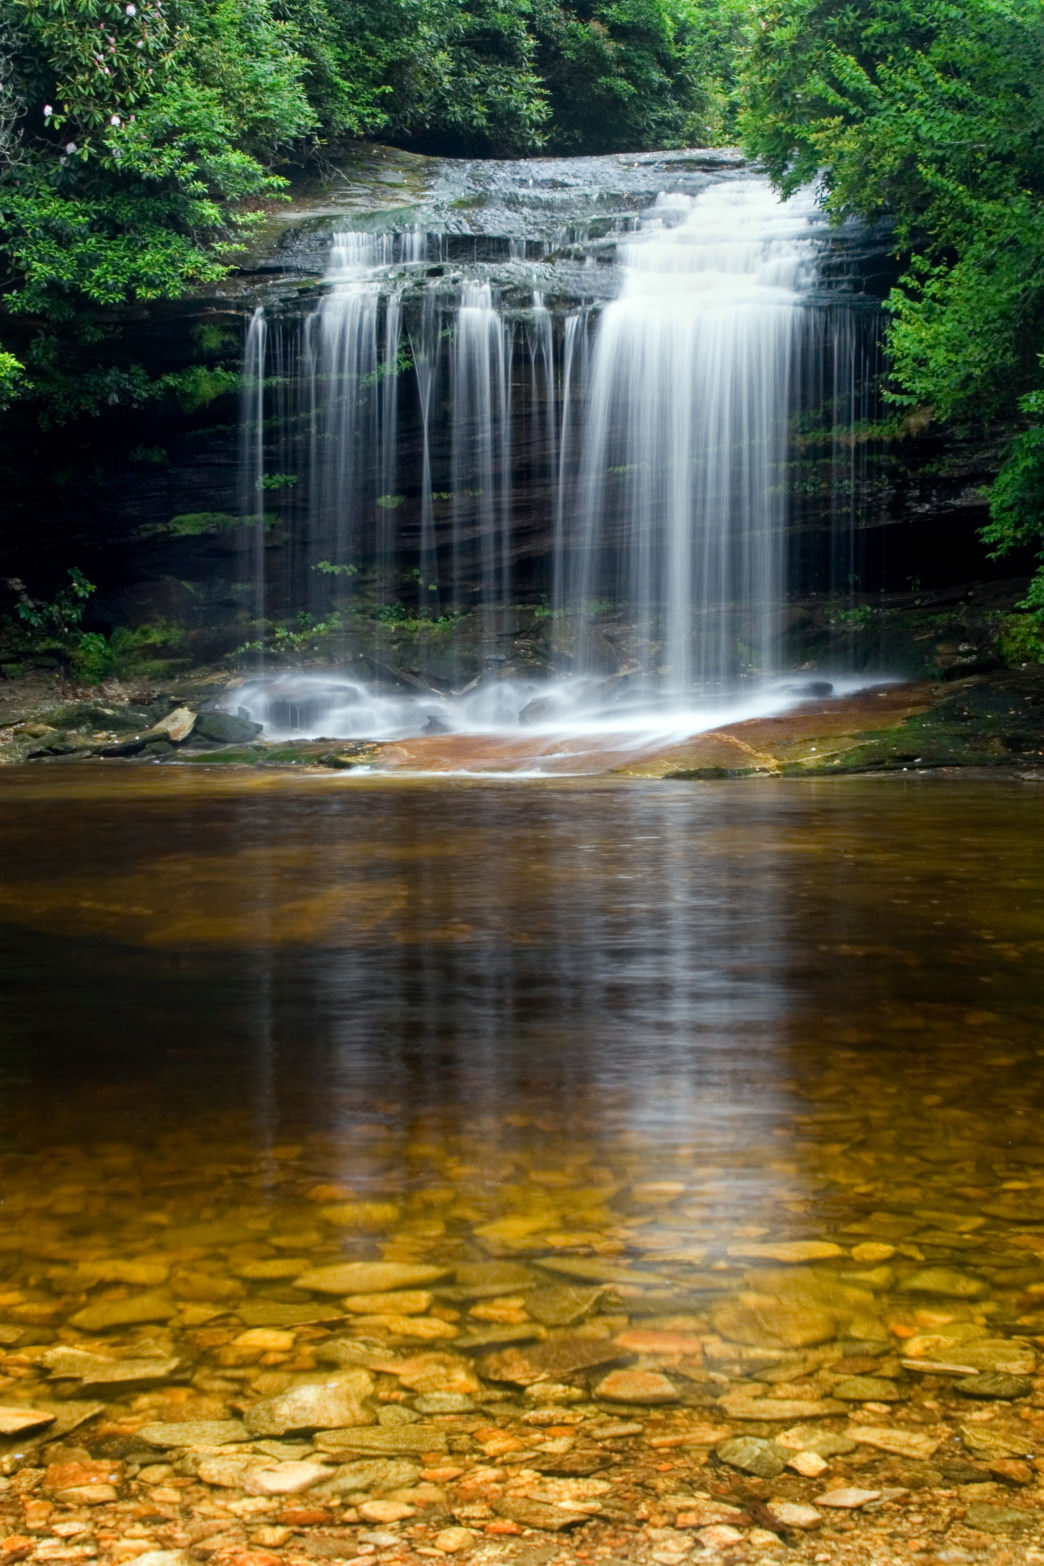 Schoolhouse Falls are accessible via a 1.4-mile hike.